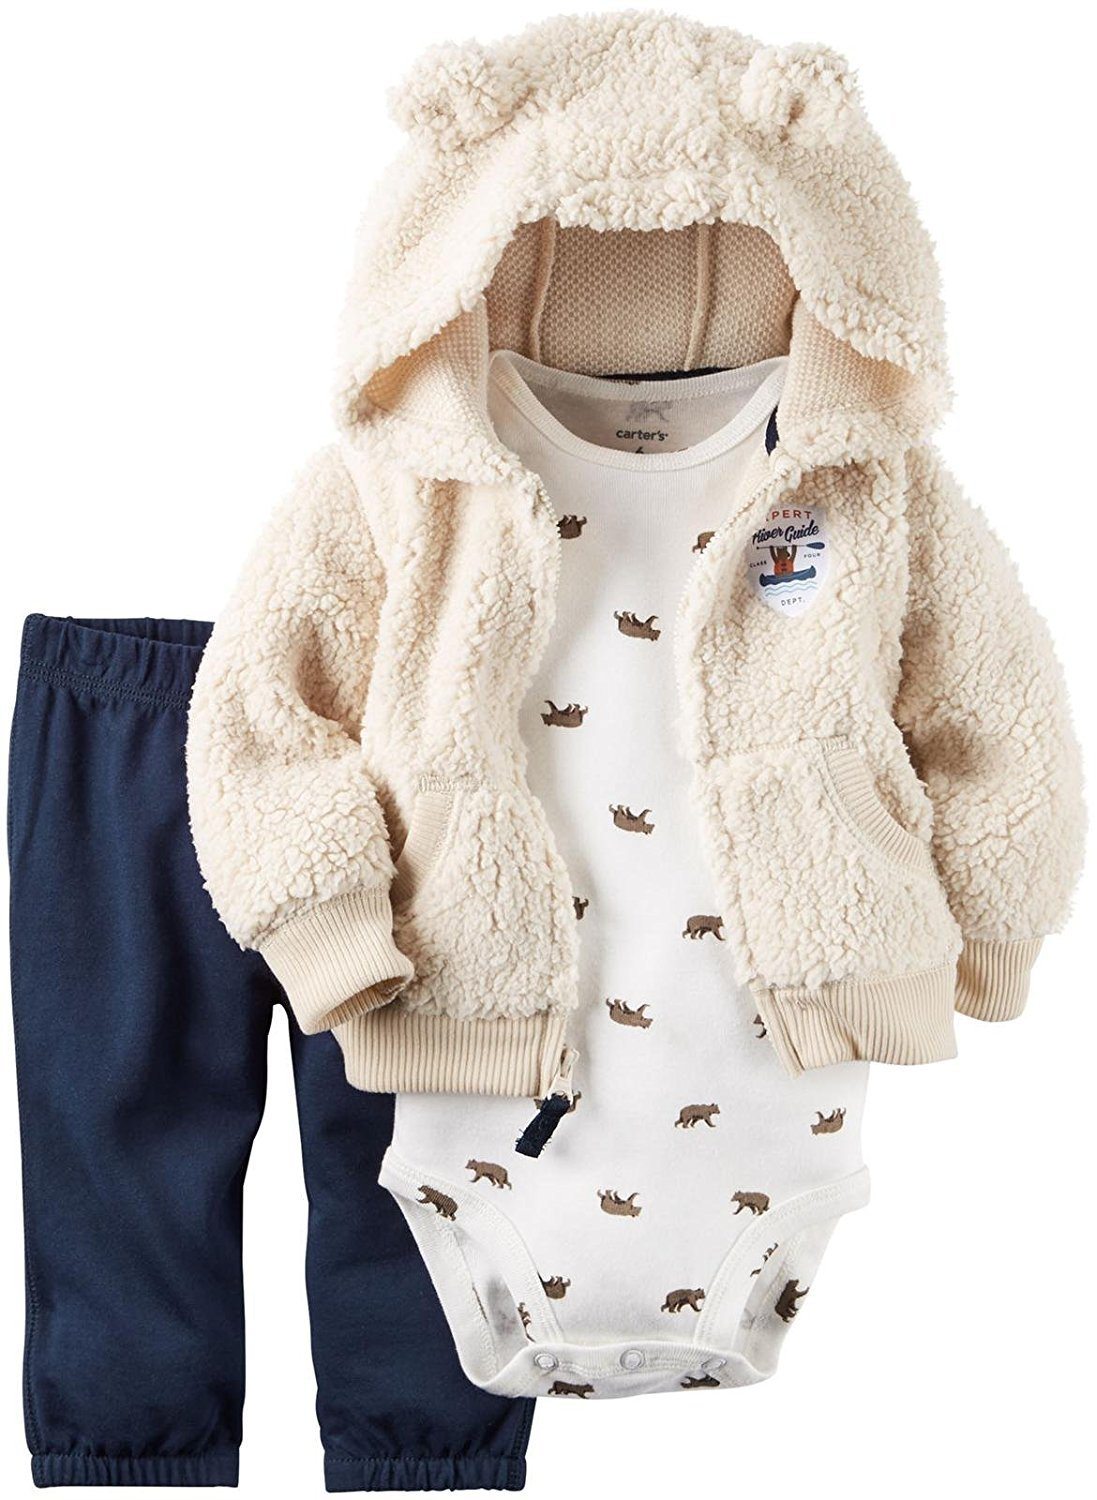 Carter's Baby-Boys 3 Pc Sets 127g260 Carters